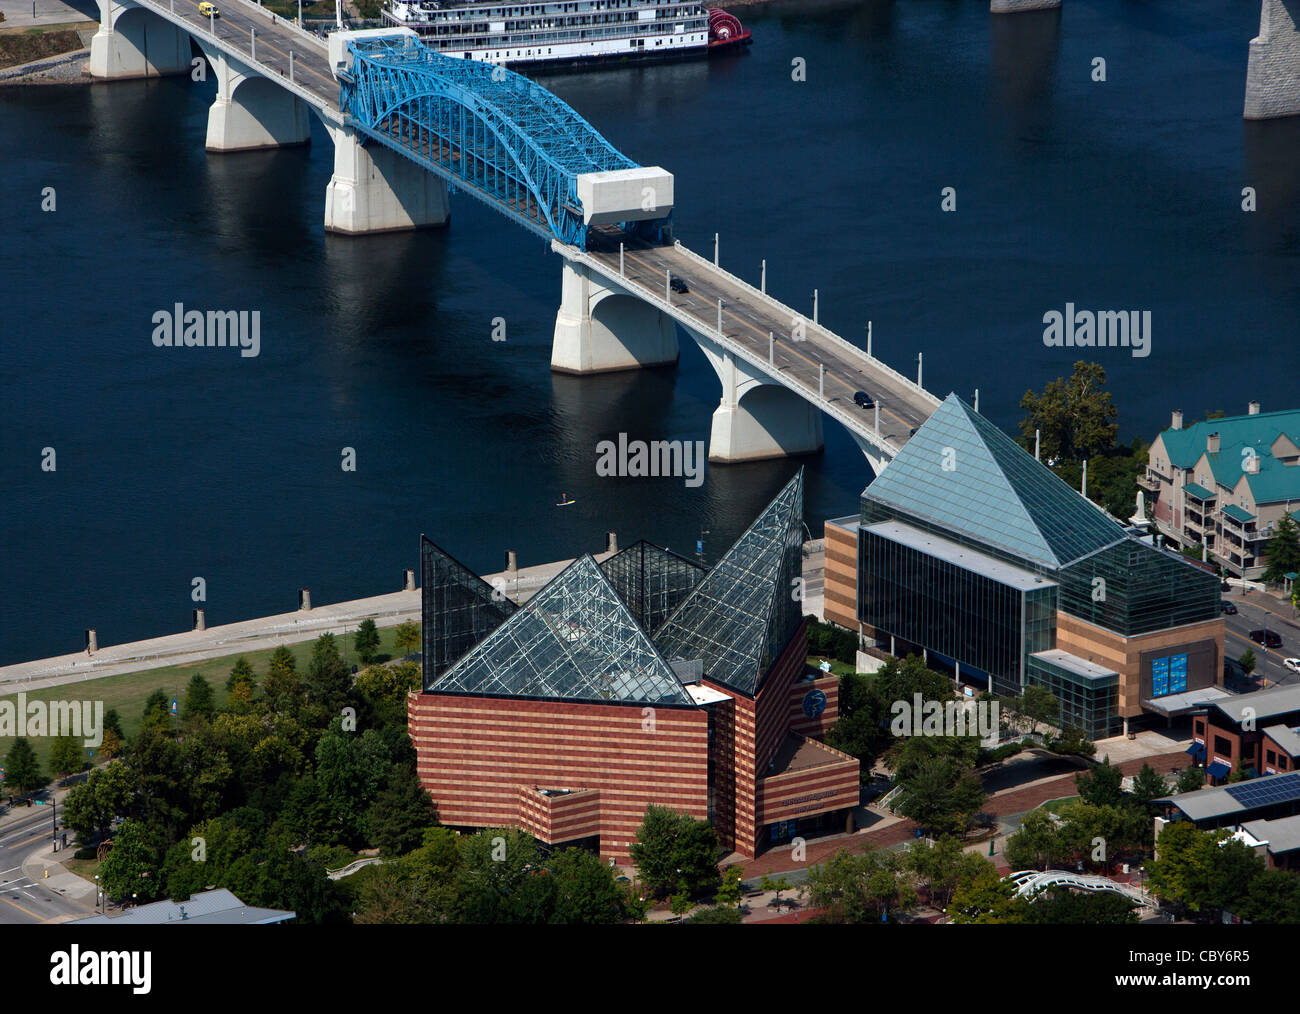 aerial photograph Tennessee Aquarium, Chattanooga, Tennessee - Stock Image